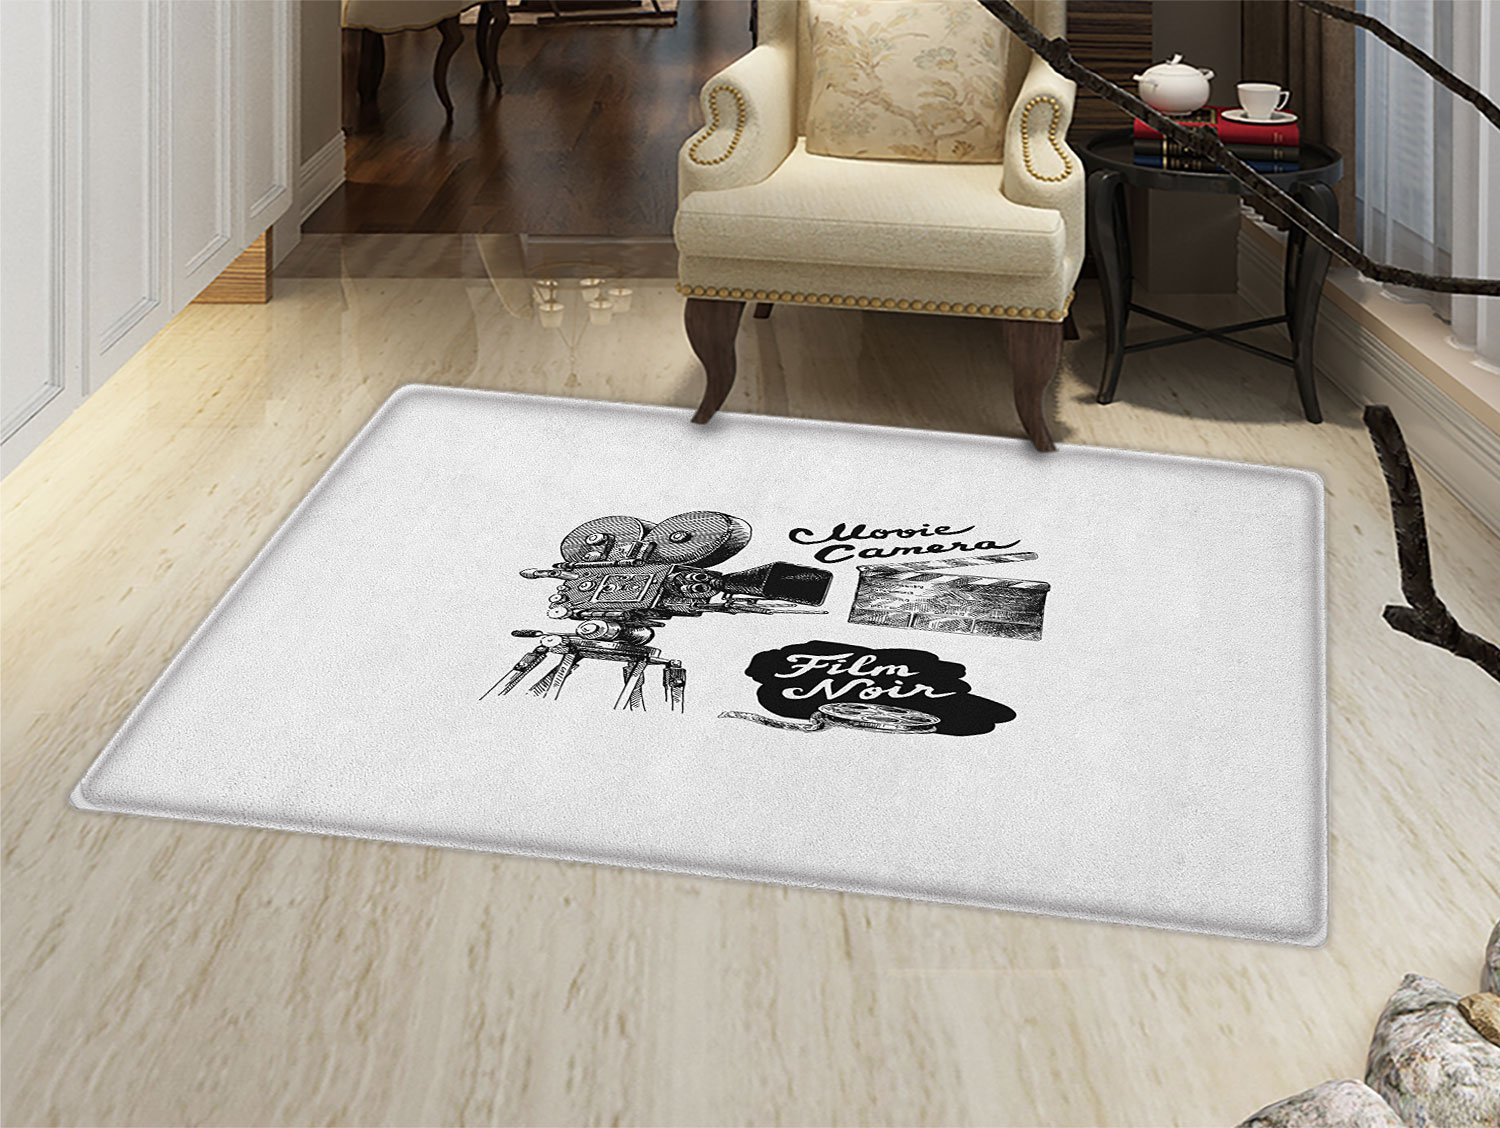 Movie Theater Door Mats Area Rug Antique Movie Camera Hand Drawn Style Art Collection Film Noir Genre Theme Floor mat Bath Mat for tub Black White